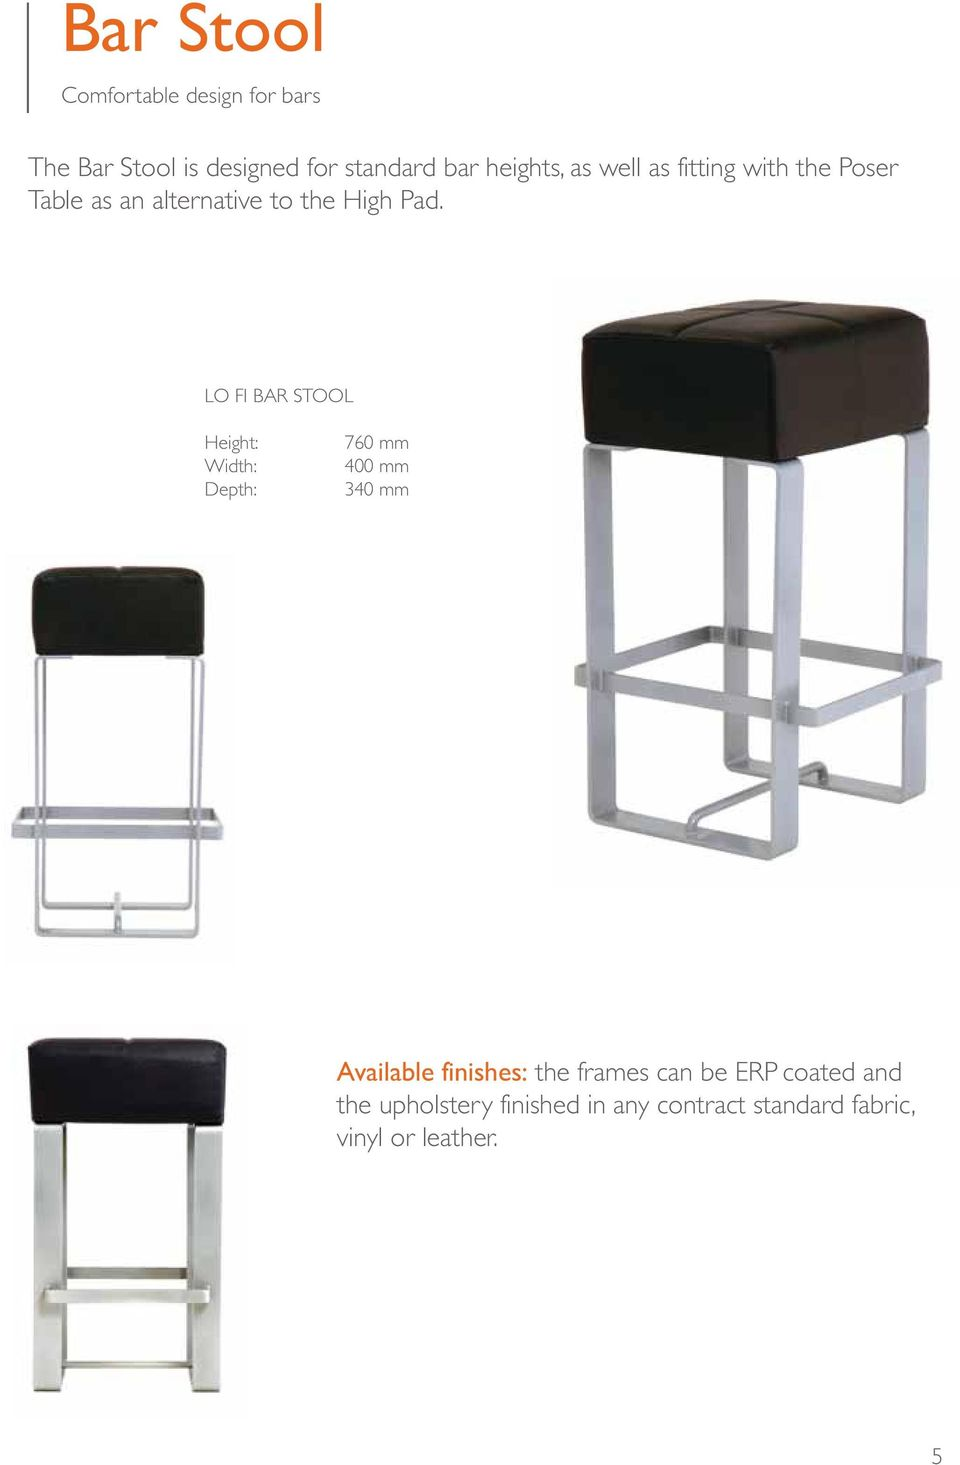 LO FI BAR STOOL 760 mm 400 mm 340 mm Available finishes: the frames can be ERP